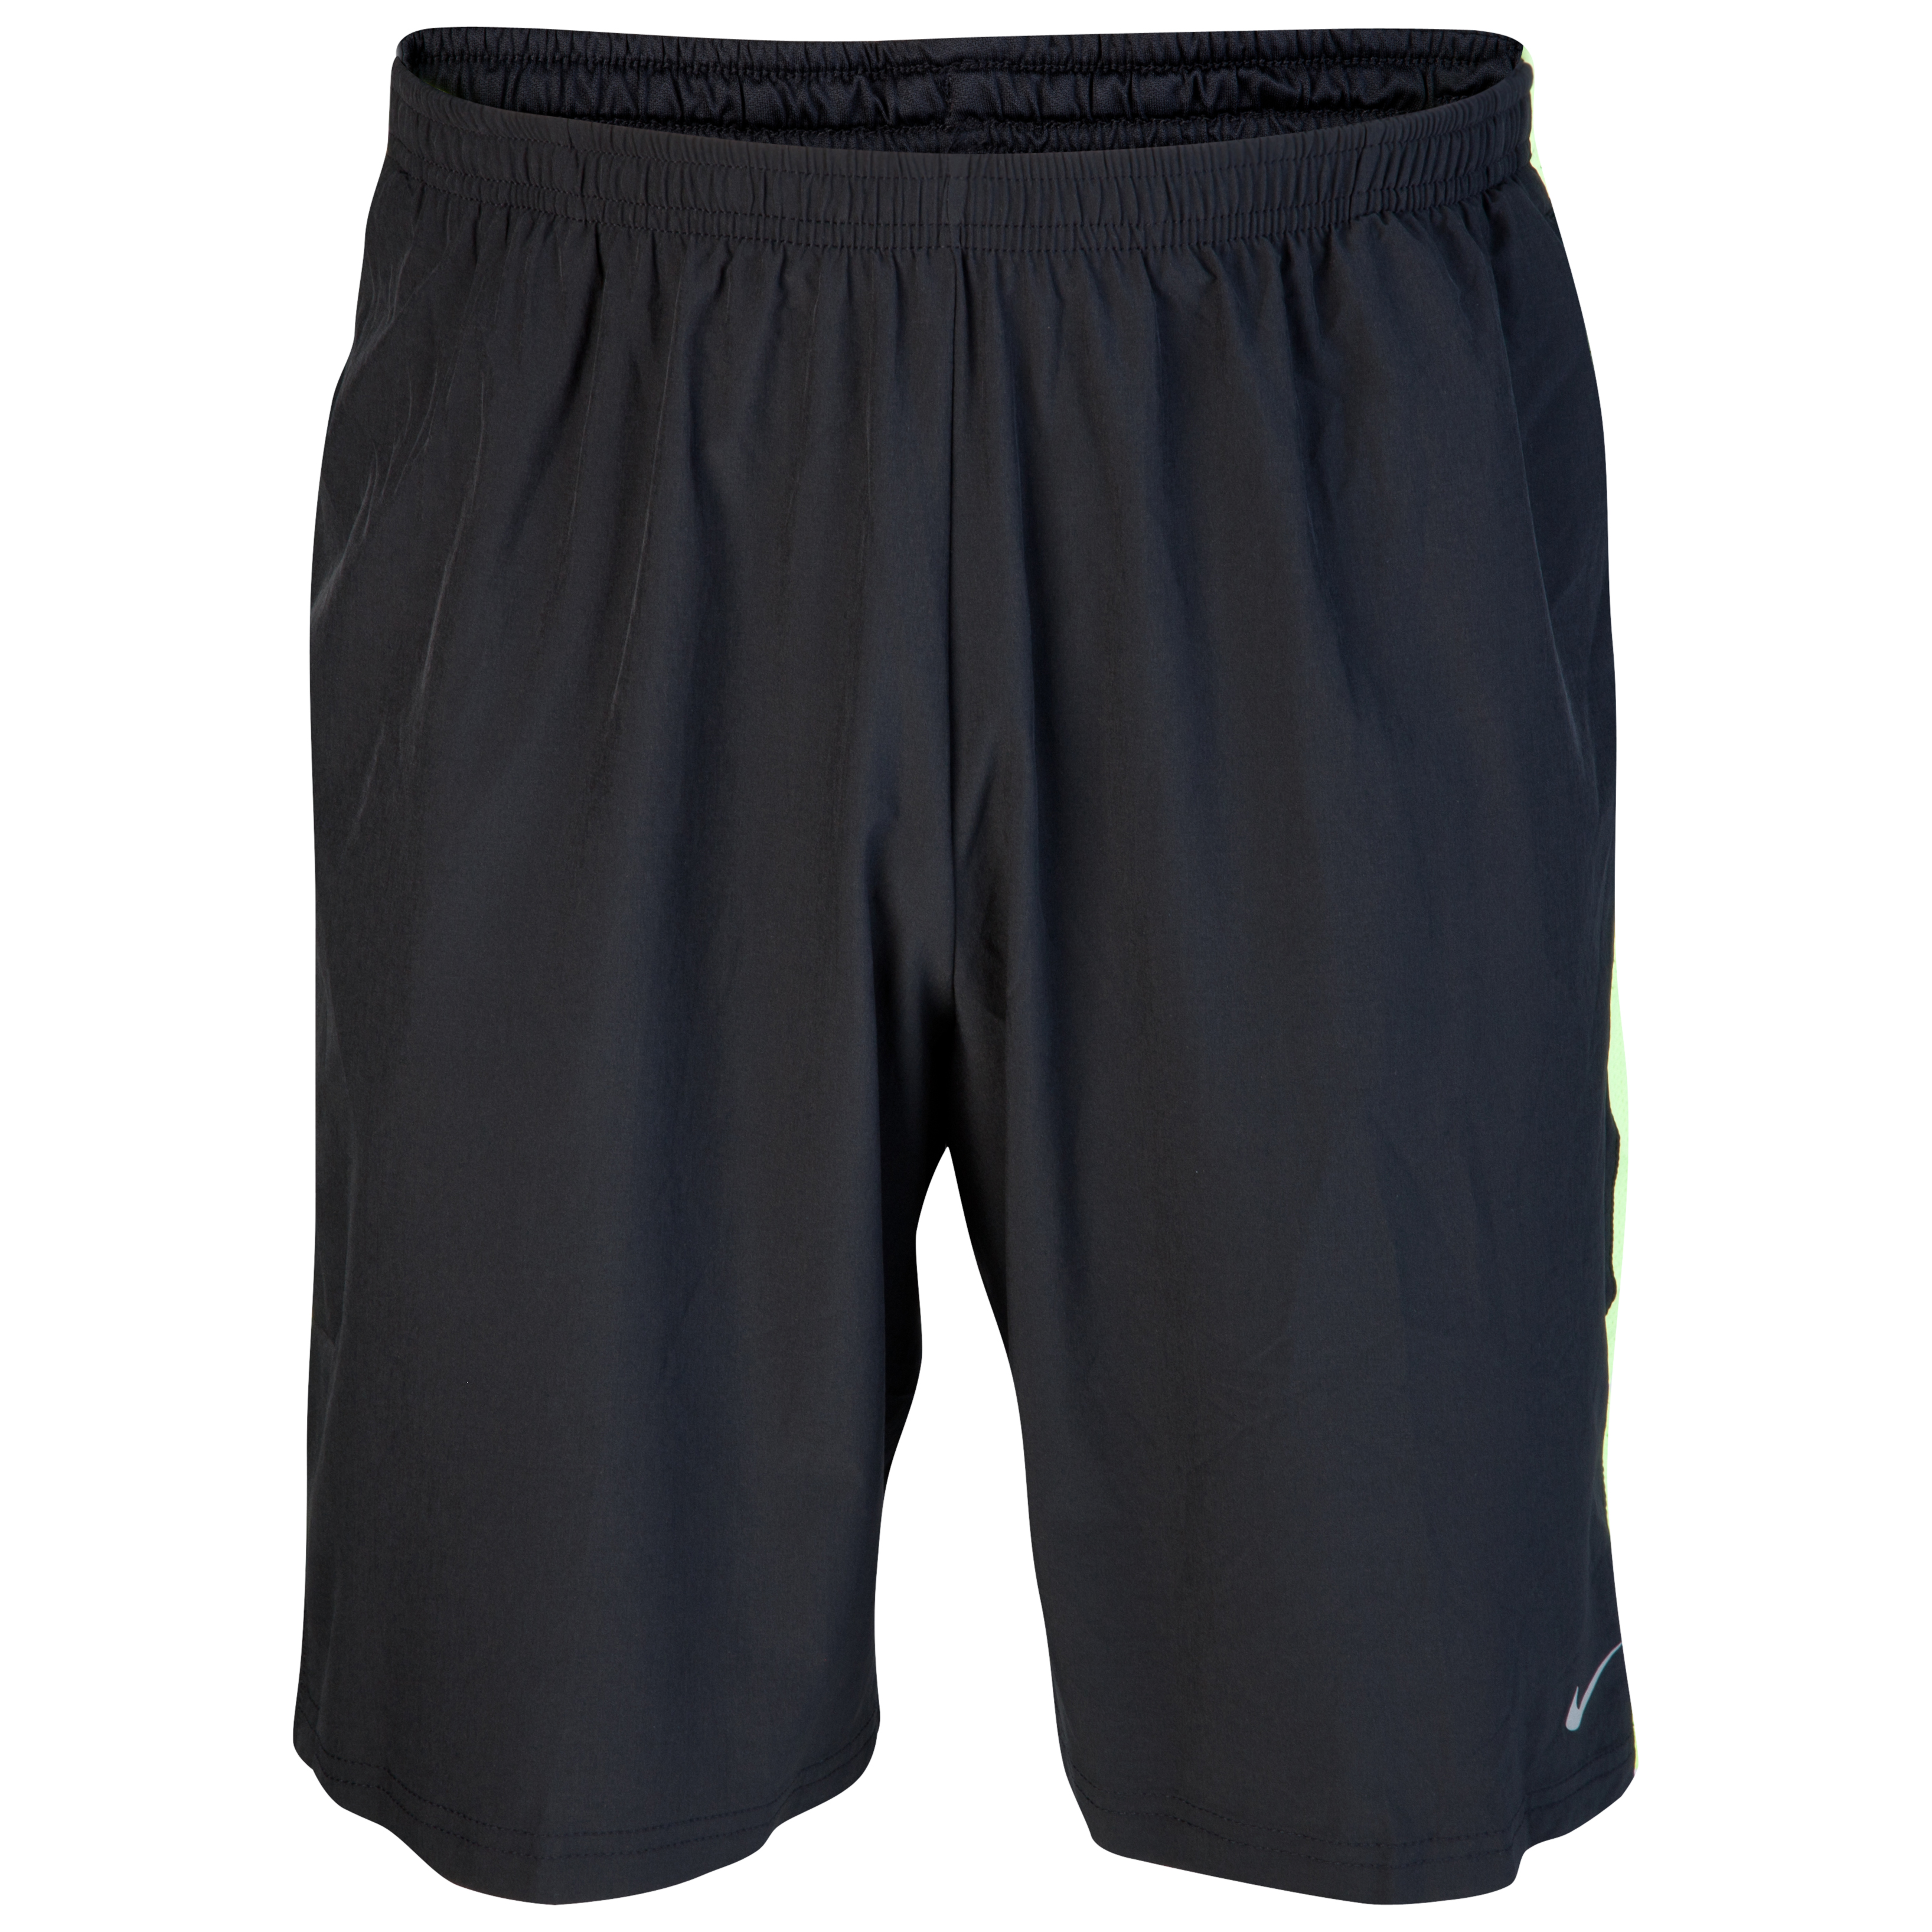 Nike 9 SW Shorts - Black/Volt/Light Charcoal/Reflective Silver